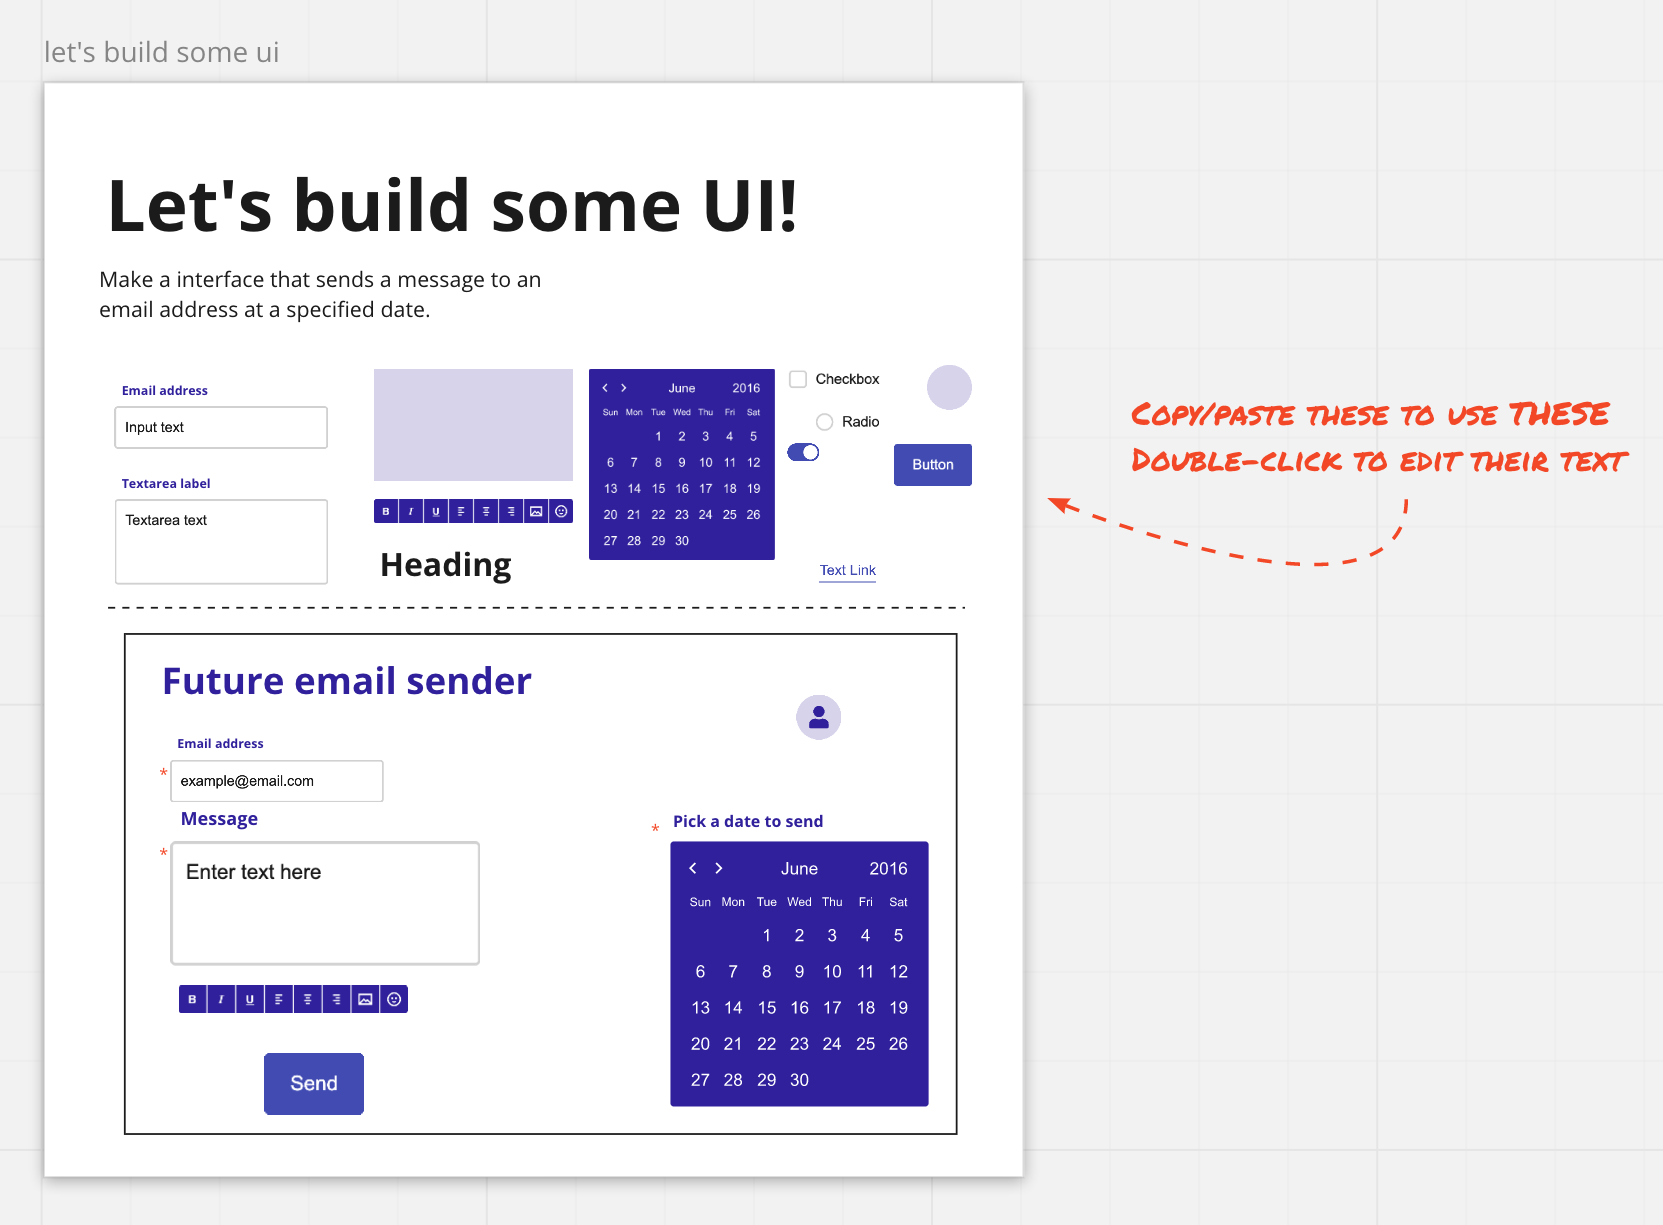 A board in Miro with the prompt, 'Let's build some UI!' Below the prompt is a collection of UI widgets including text inputs, a calendar, headings, and radio and checkboxes. Below that is a simple prototyped implementation that features email adderess and message inputs, time and date scheduling controls, and a send button.